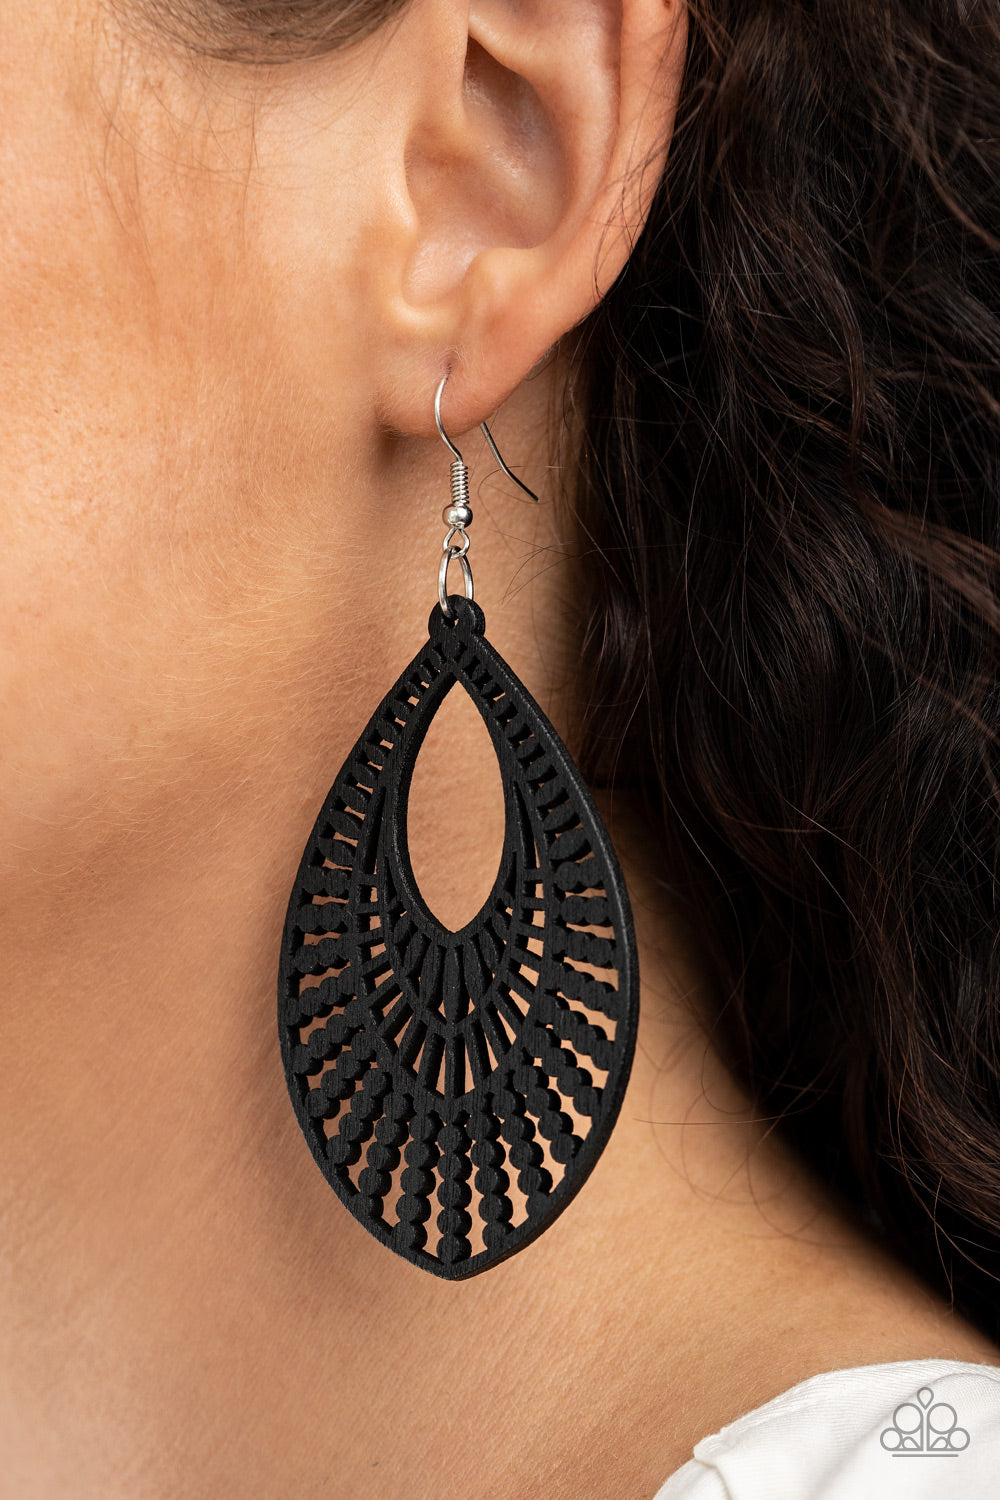 Paparazzi Jewelry & Accessories - Bermuda Breeze - Black Earrings. Bling By Titia Boutique